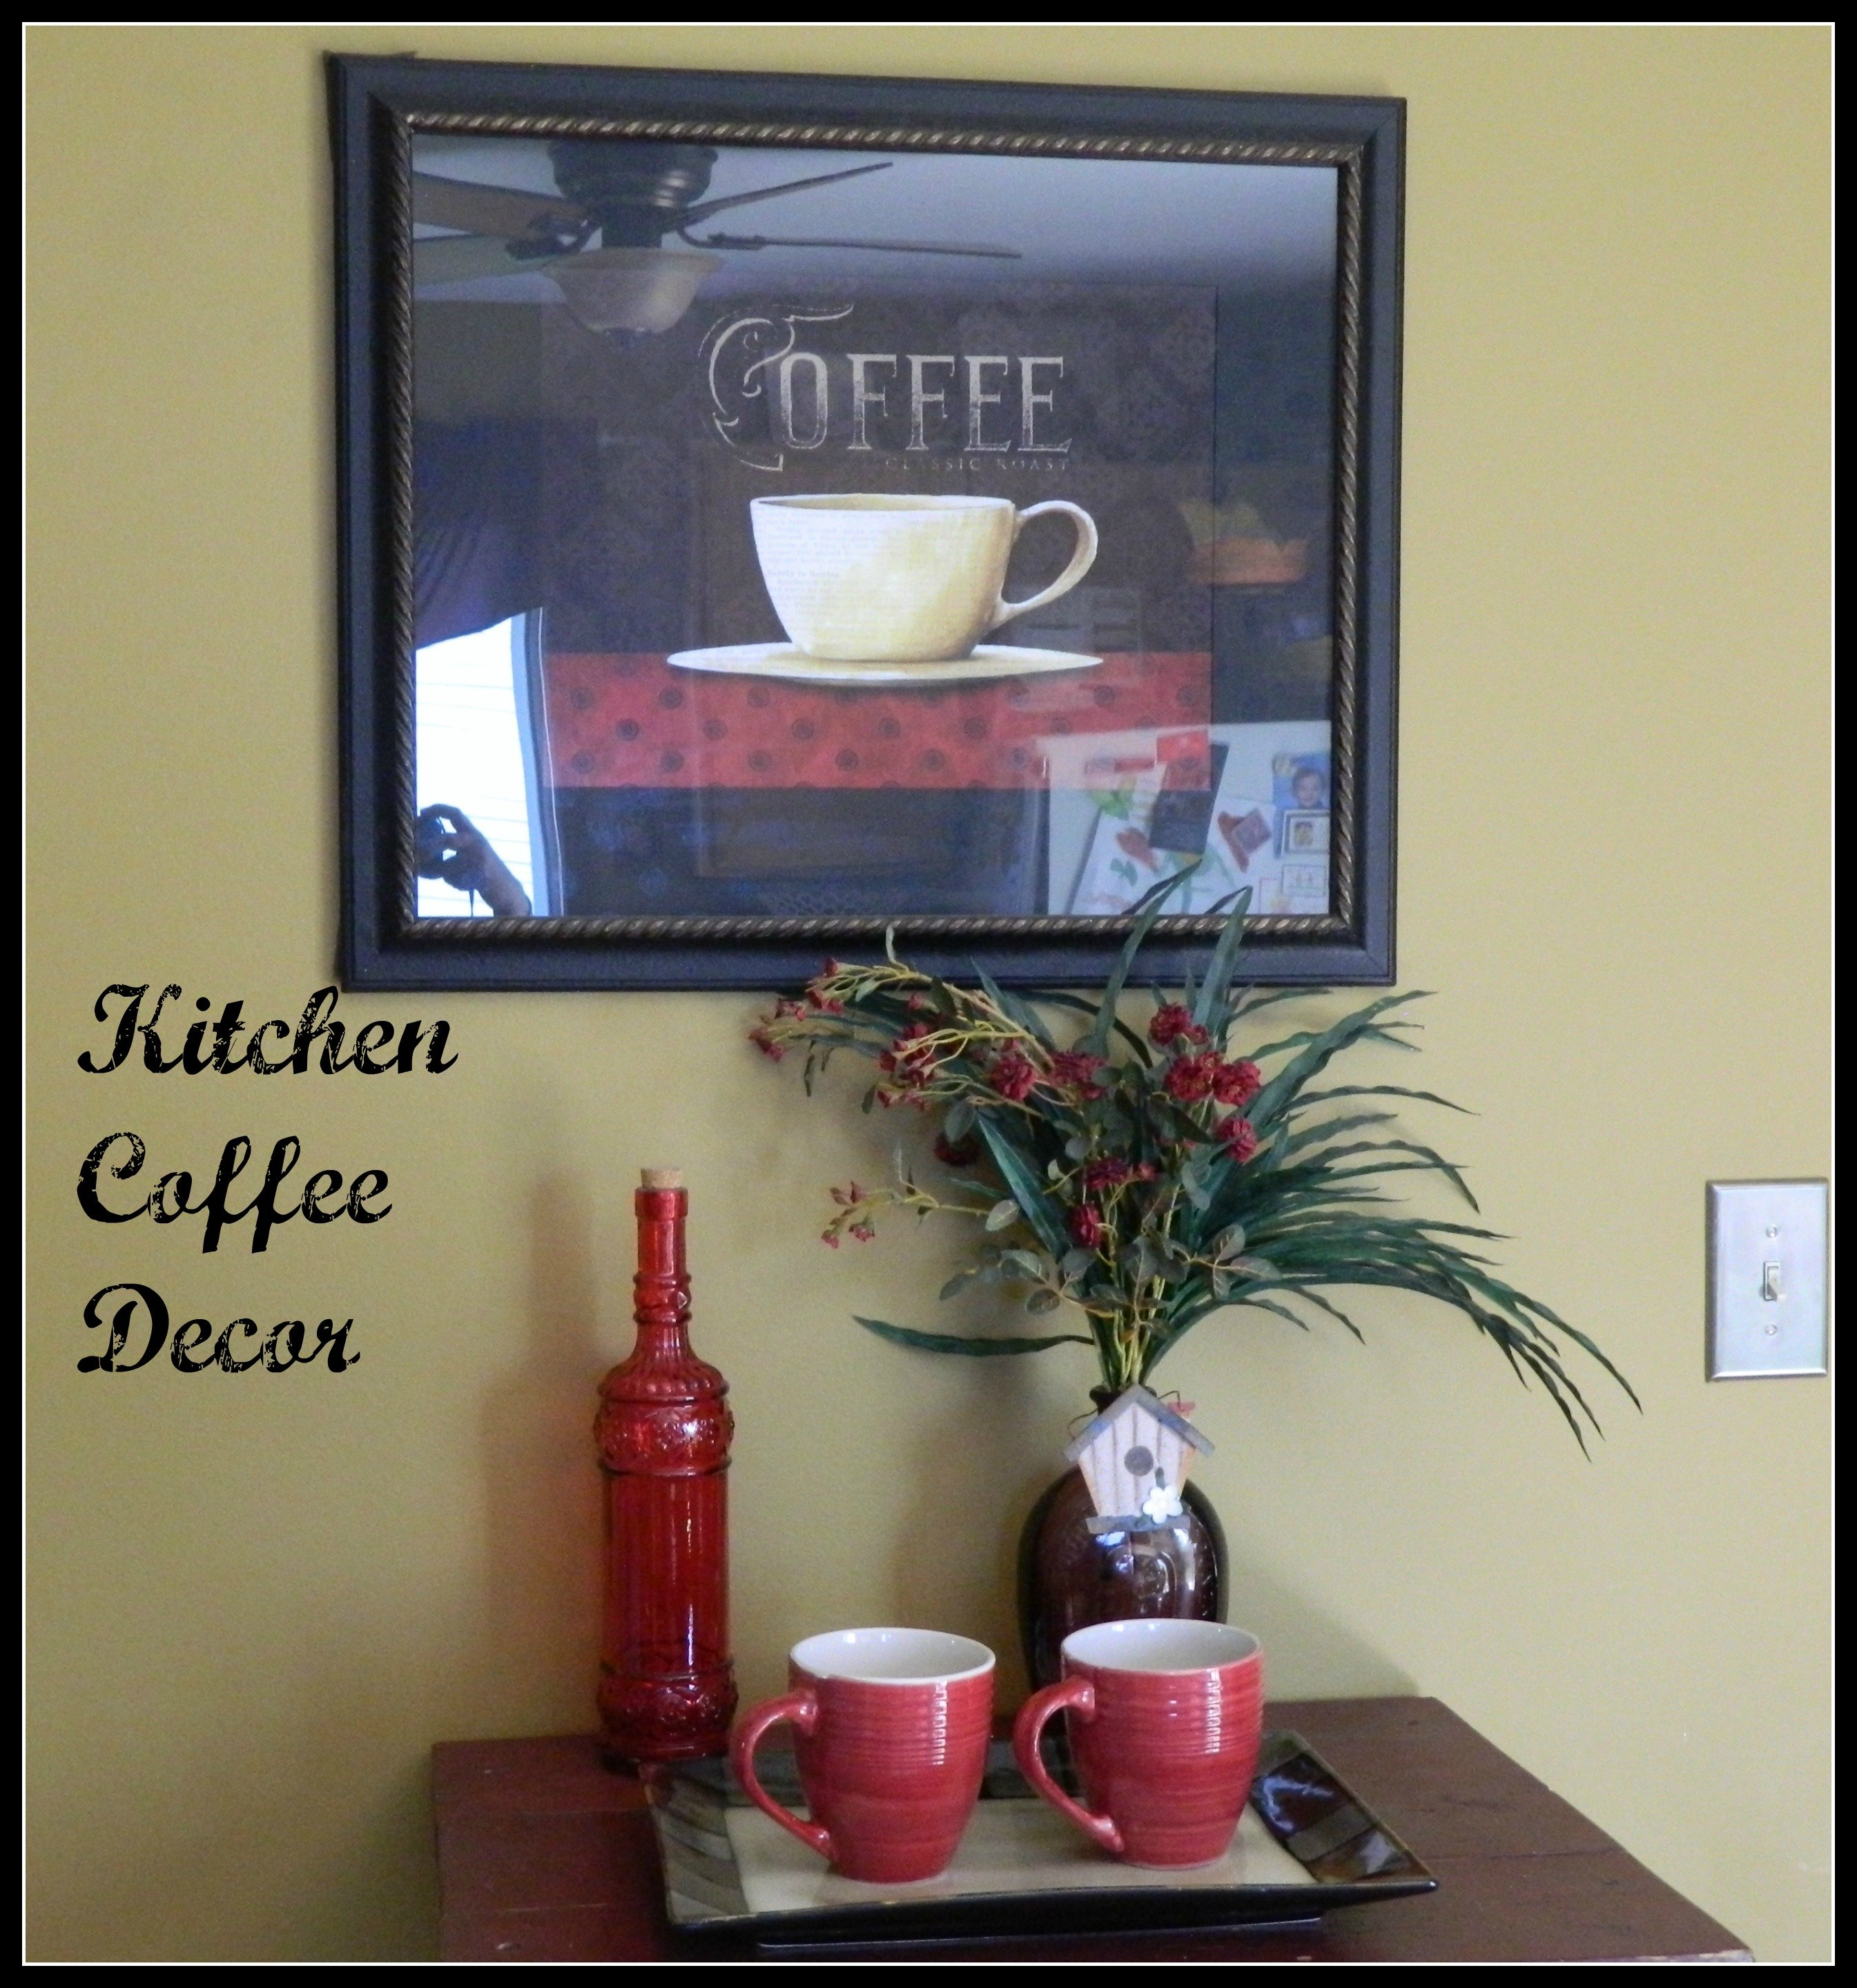 Coffee Themed Kitchen Decor - Housekaboodle